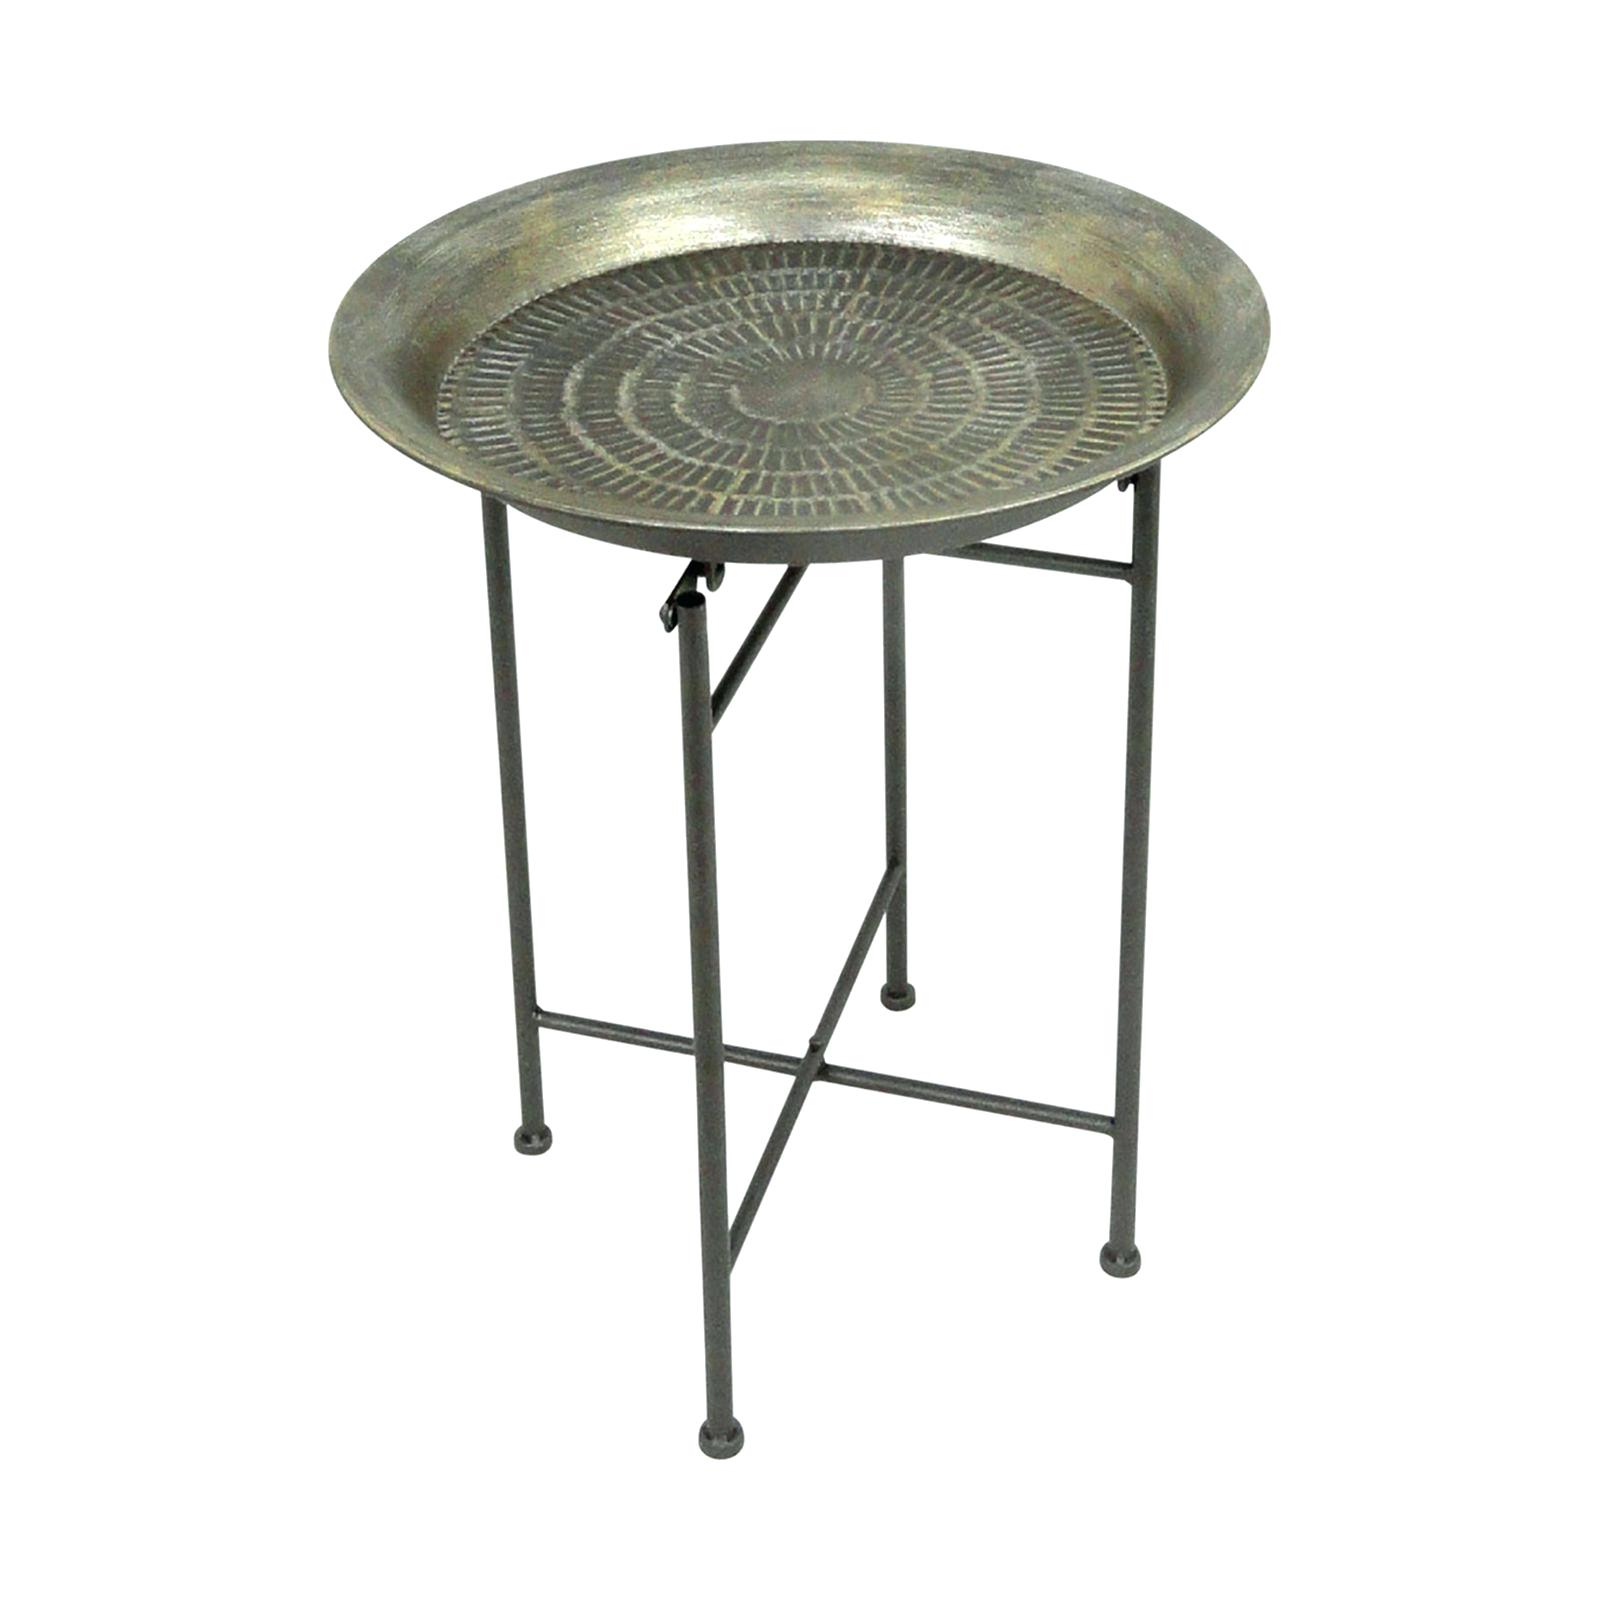 round metal accent table target threshold kitchen dining sets affordable modern outdoor furniture acrylic nightstand antique inlaid coffee waterproof cover for garden and chairs